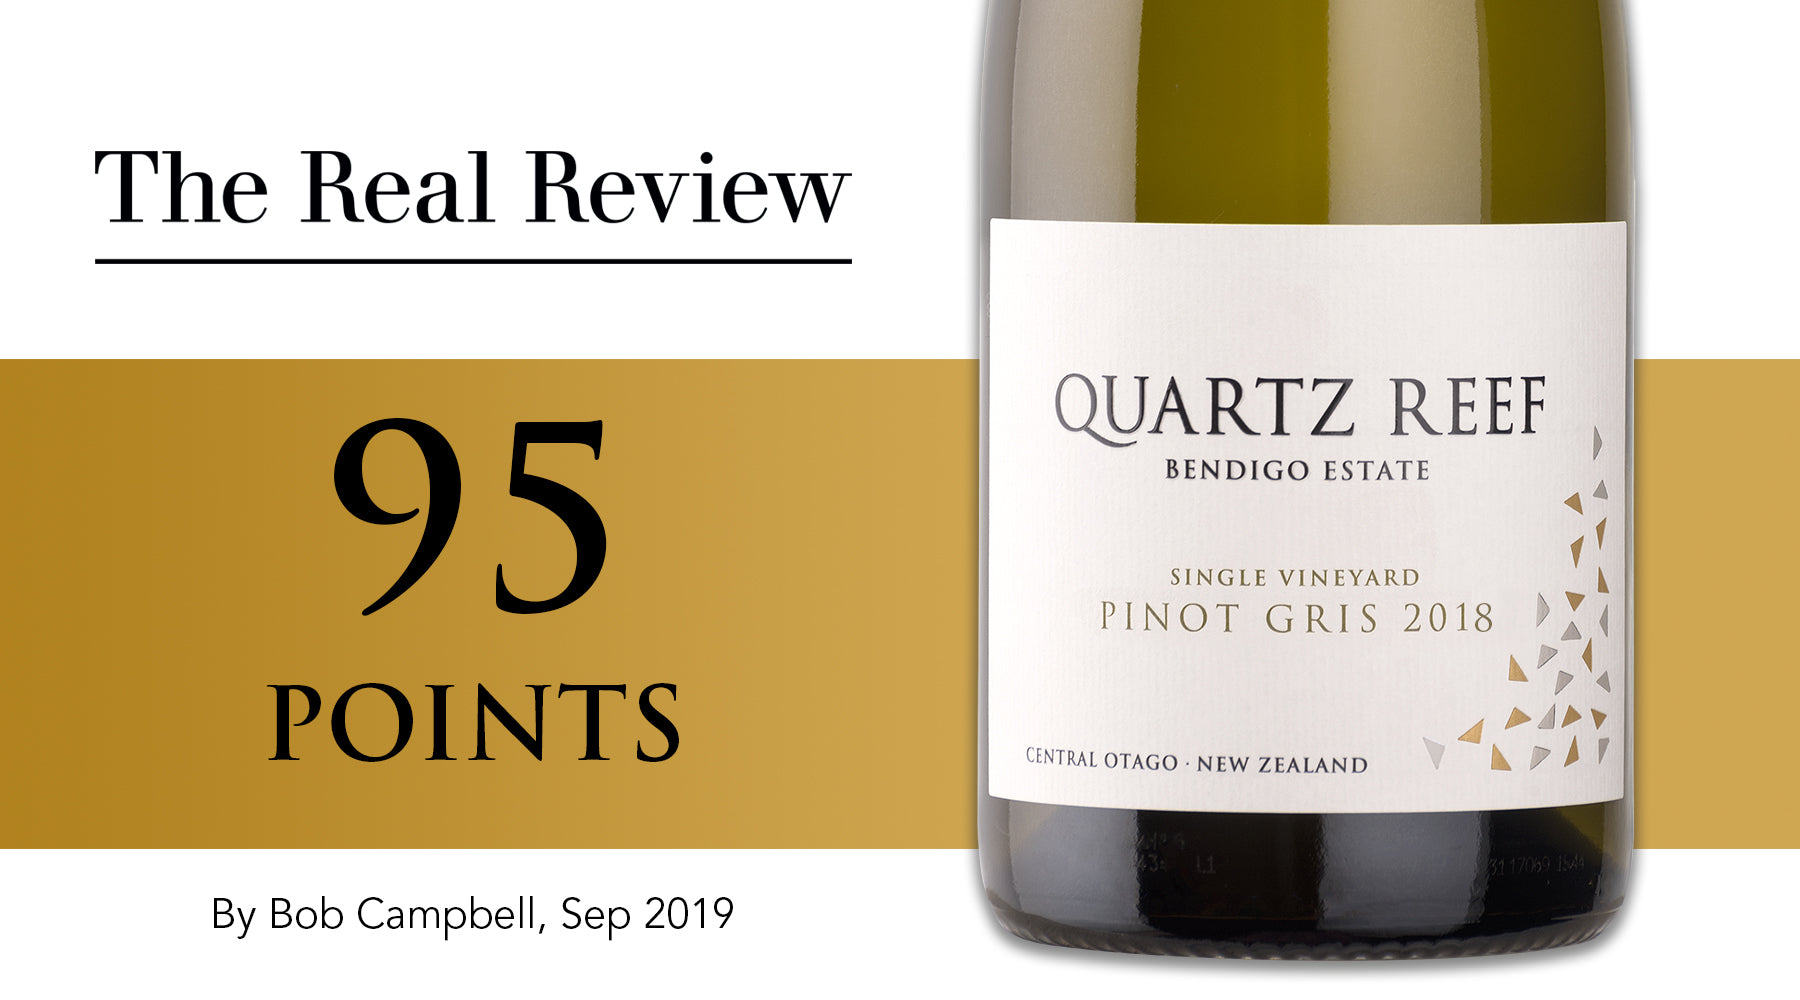 Pinot Gris 2018 - Awarded 95 Points